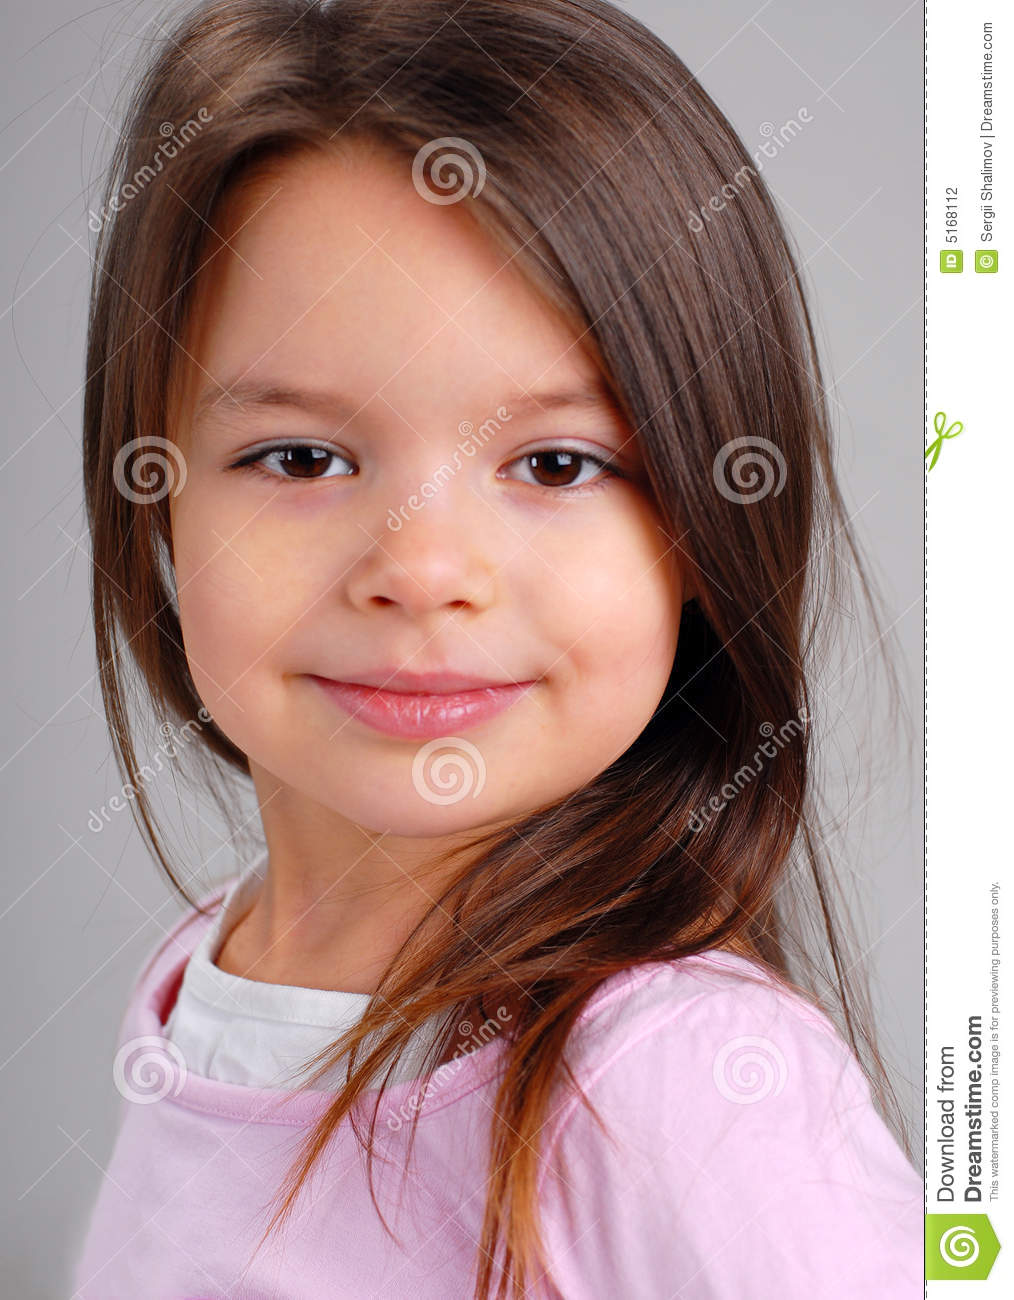 Baby girl with brown hair stock photo. Image of human ...